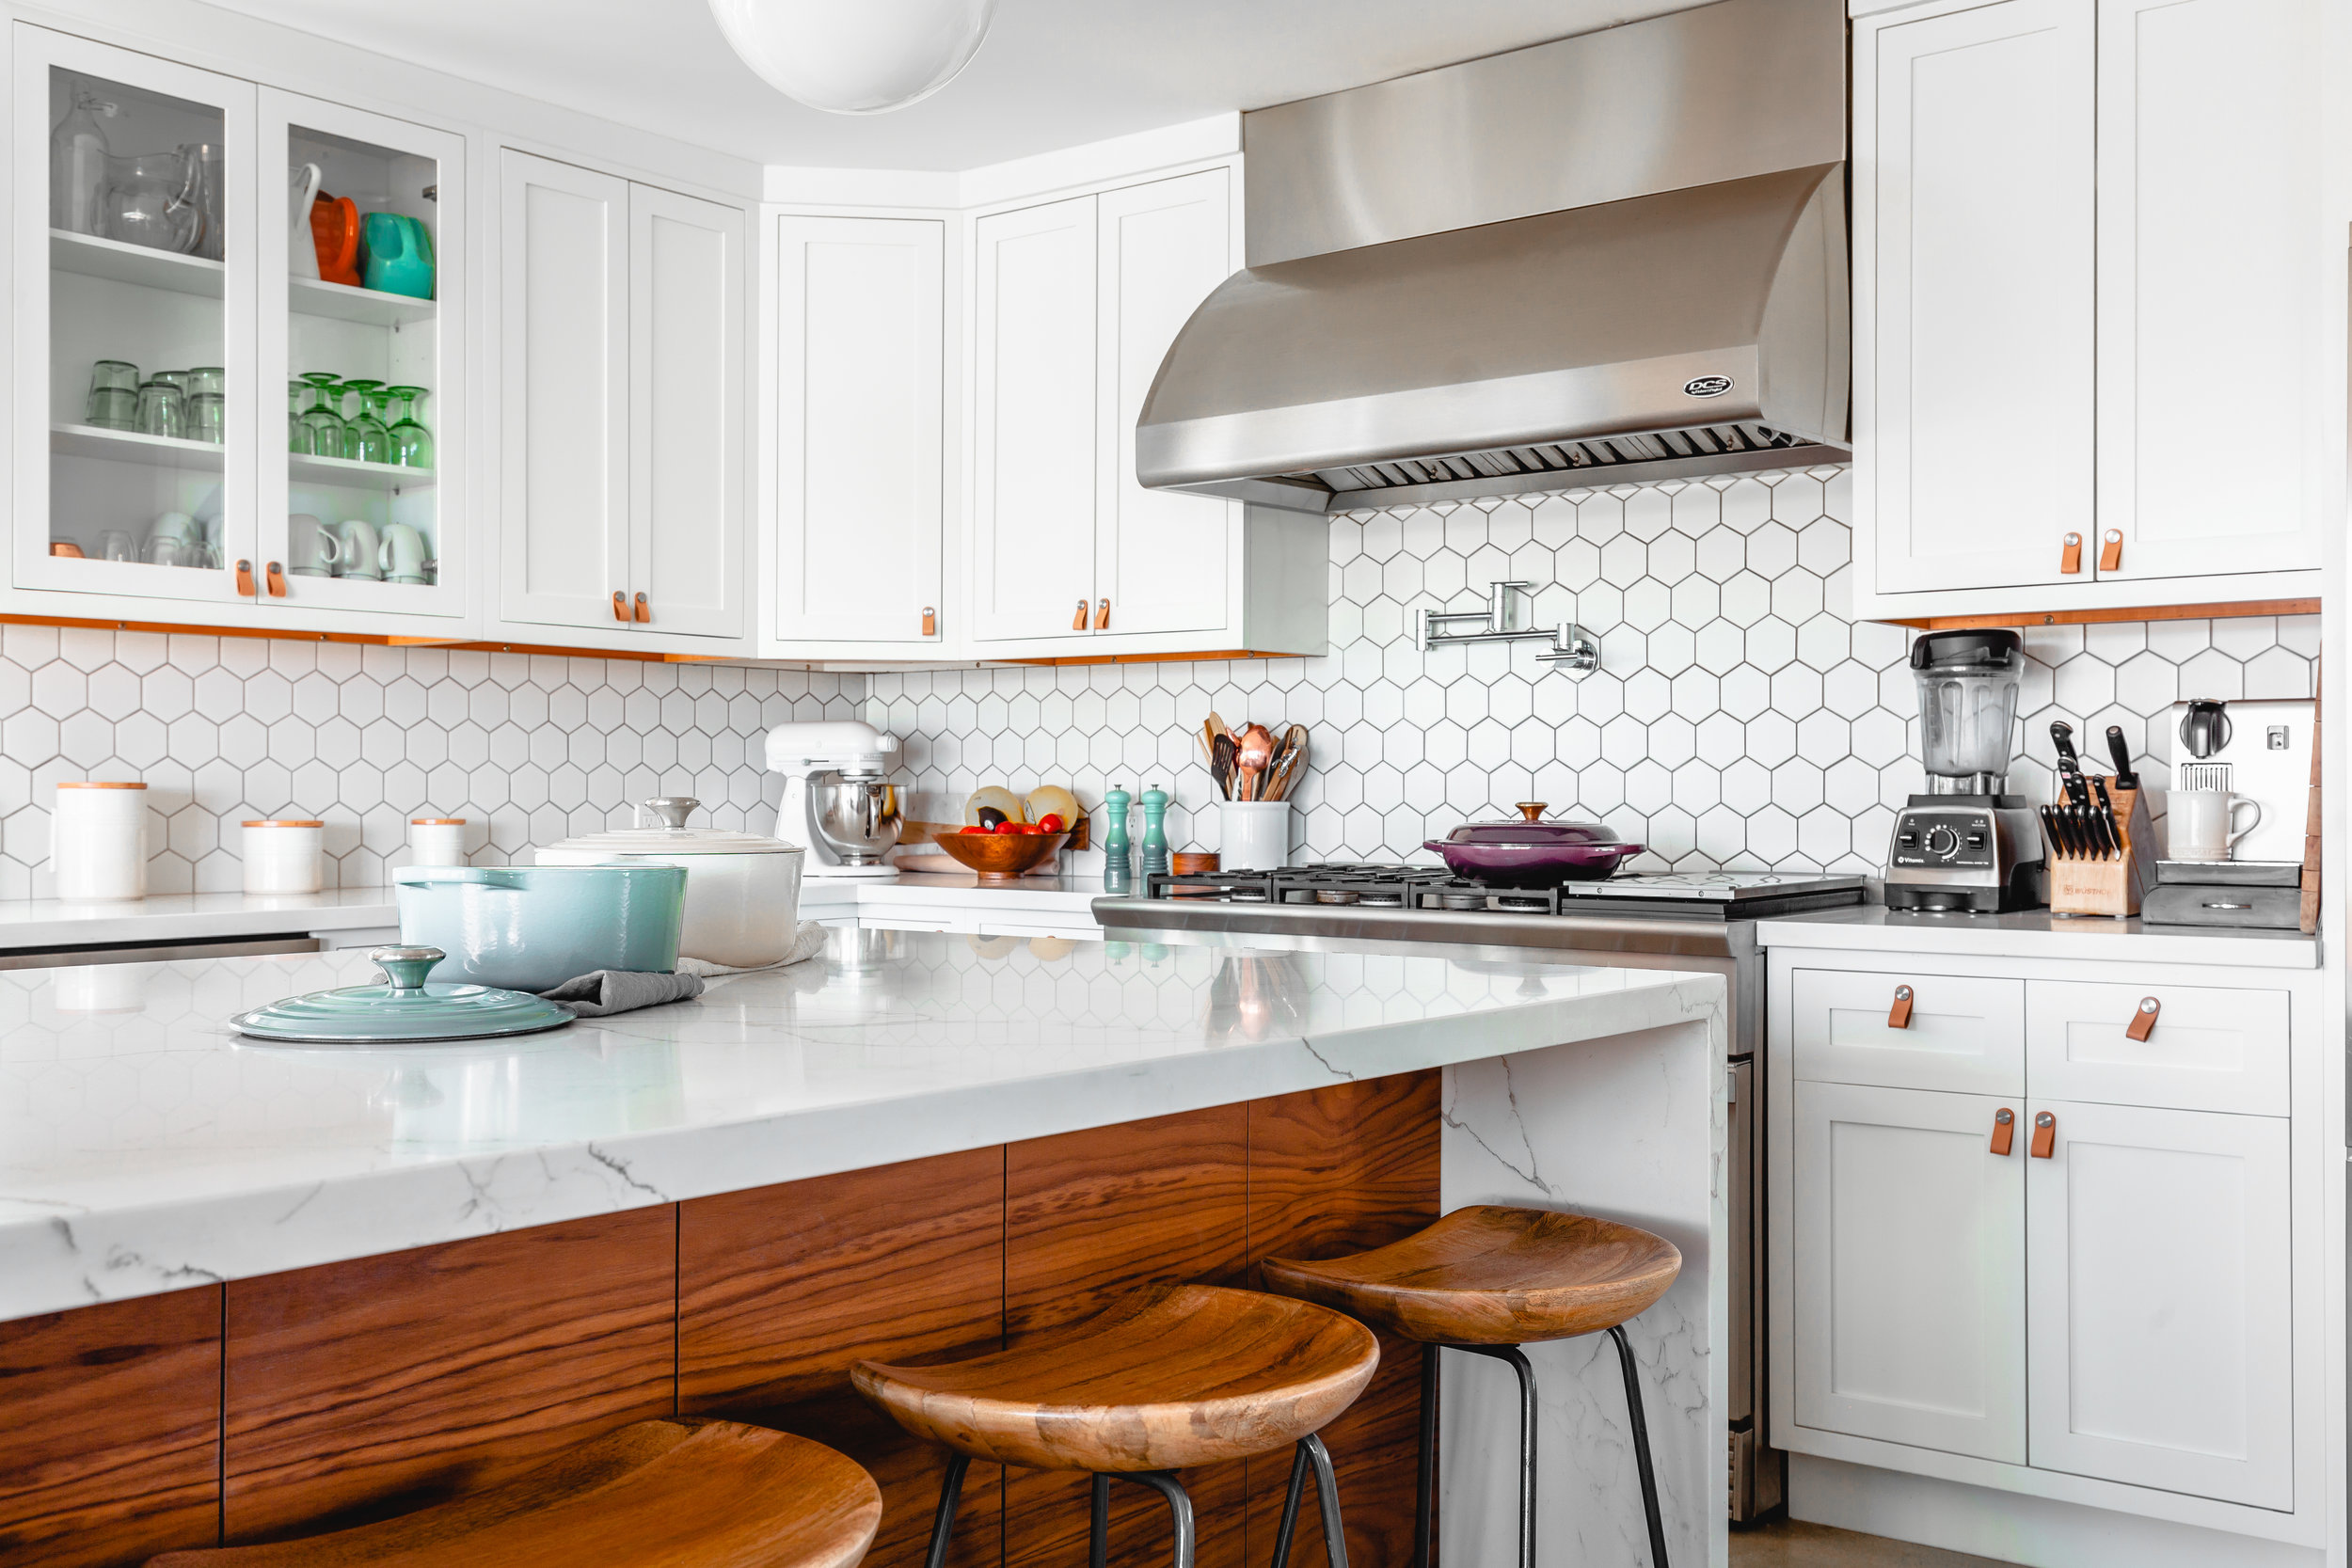 My daily routine includes making the most important meal of the day, breakfast. What's your routine? White and brown kitchen with center island, stools, and items sitting on counters. Photo by Unsplash